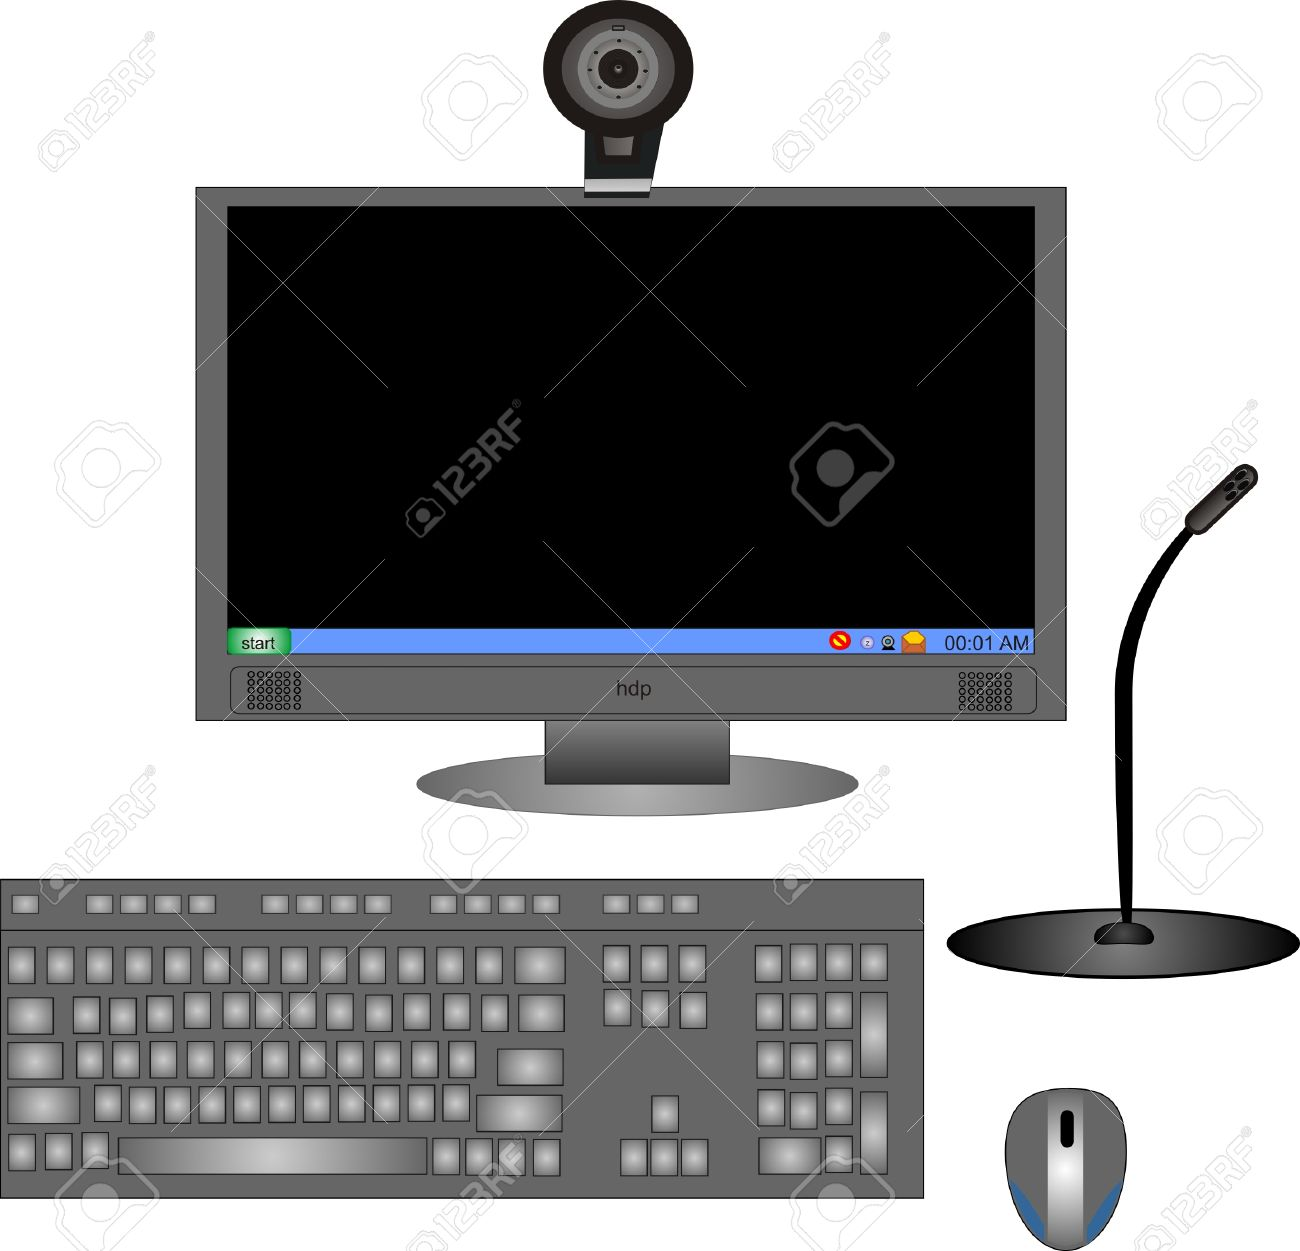 Parts Of A Complete Computer With Monitor Keyboard Mouse Royalty Free Cliparts Vectors And Stock Illustration Image 4225229